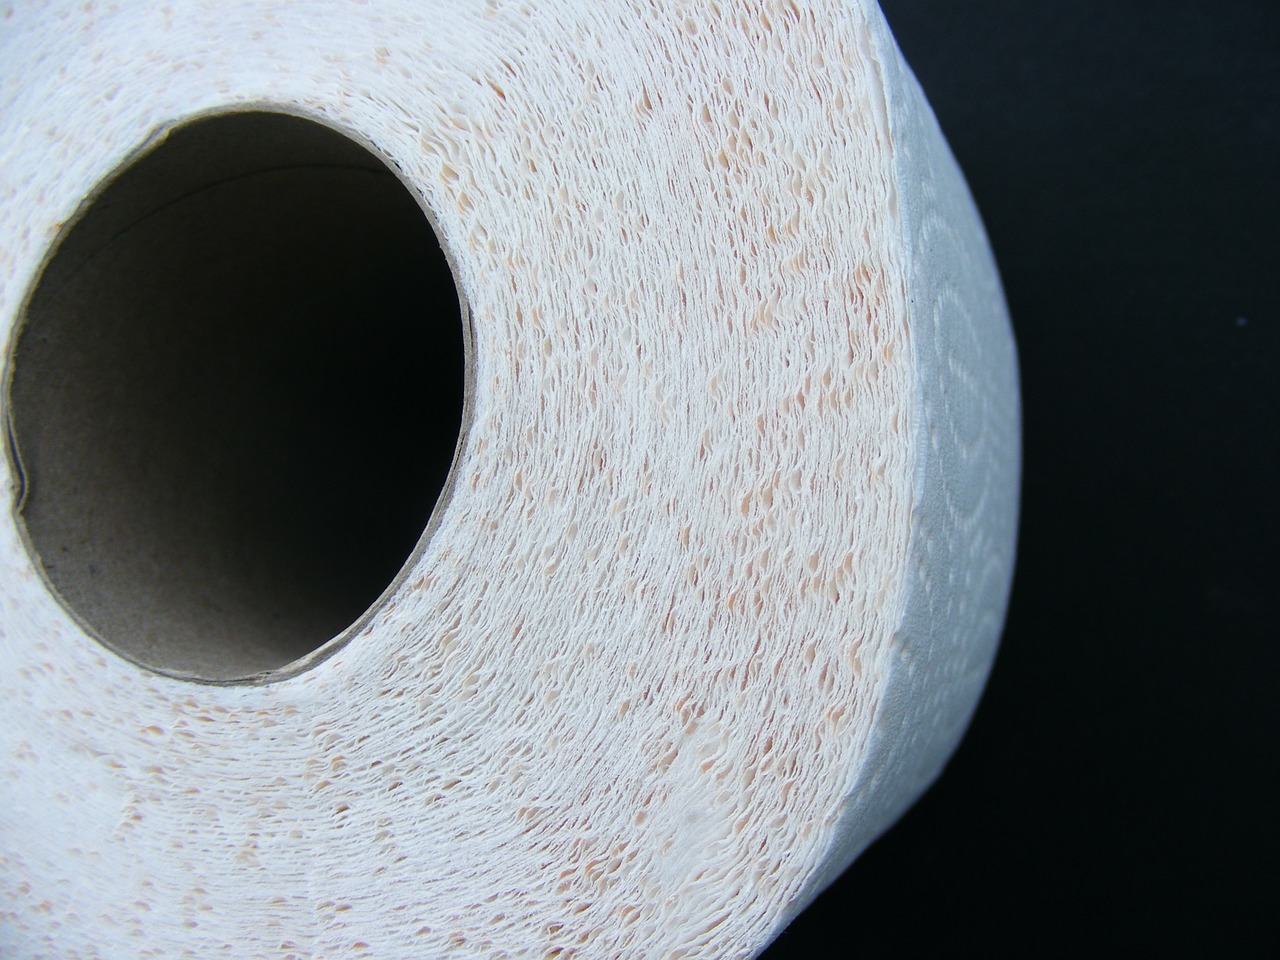 Close up of a roll of toilet paper.